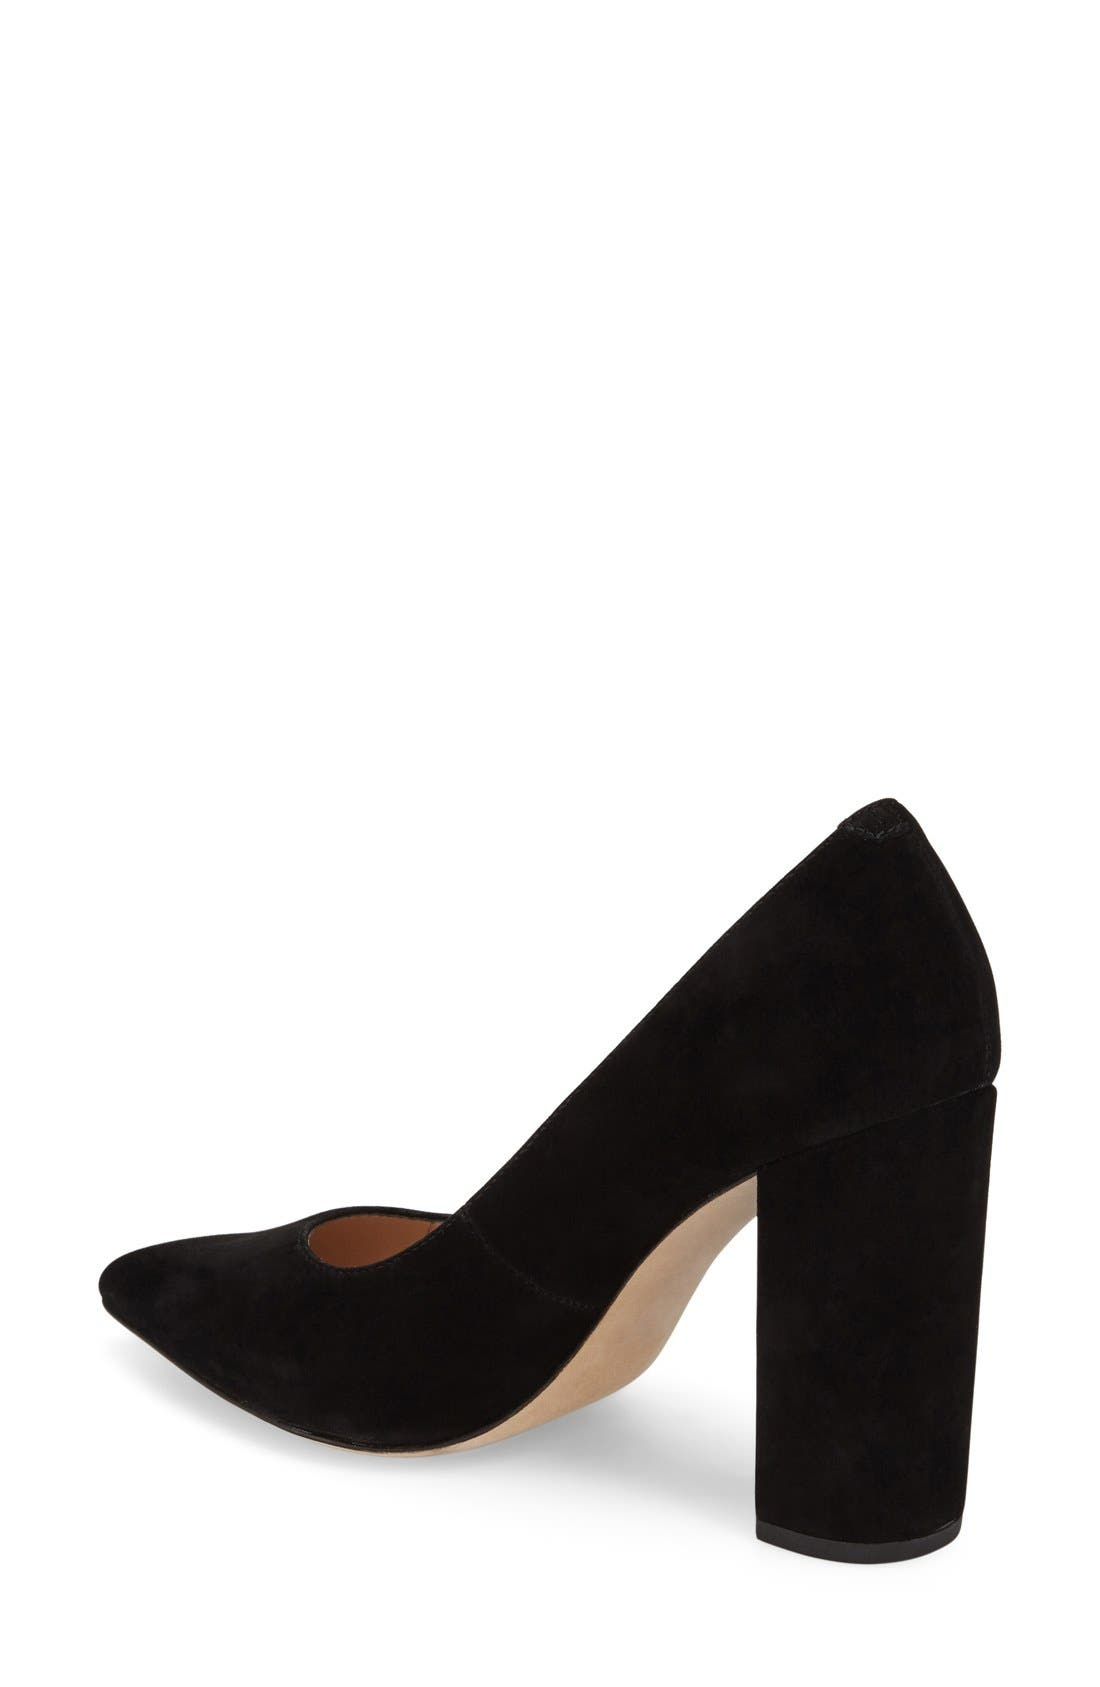 Alternate Image 2  - Pour la Victoire 'Celina' Pointy Toe Pump (Women)